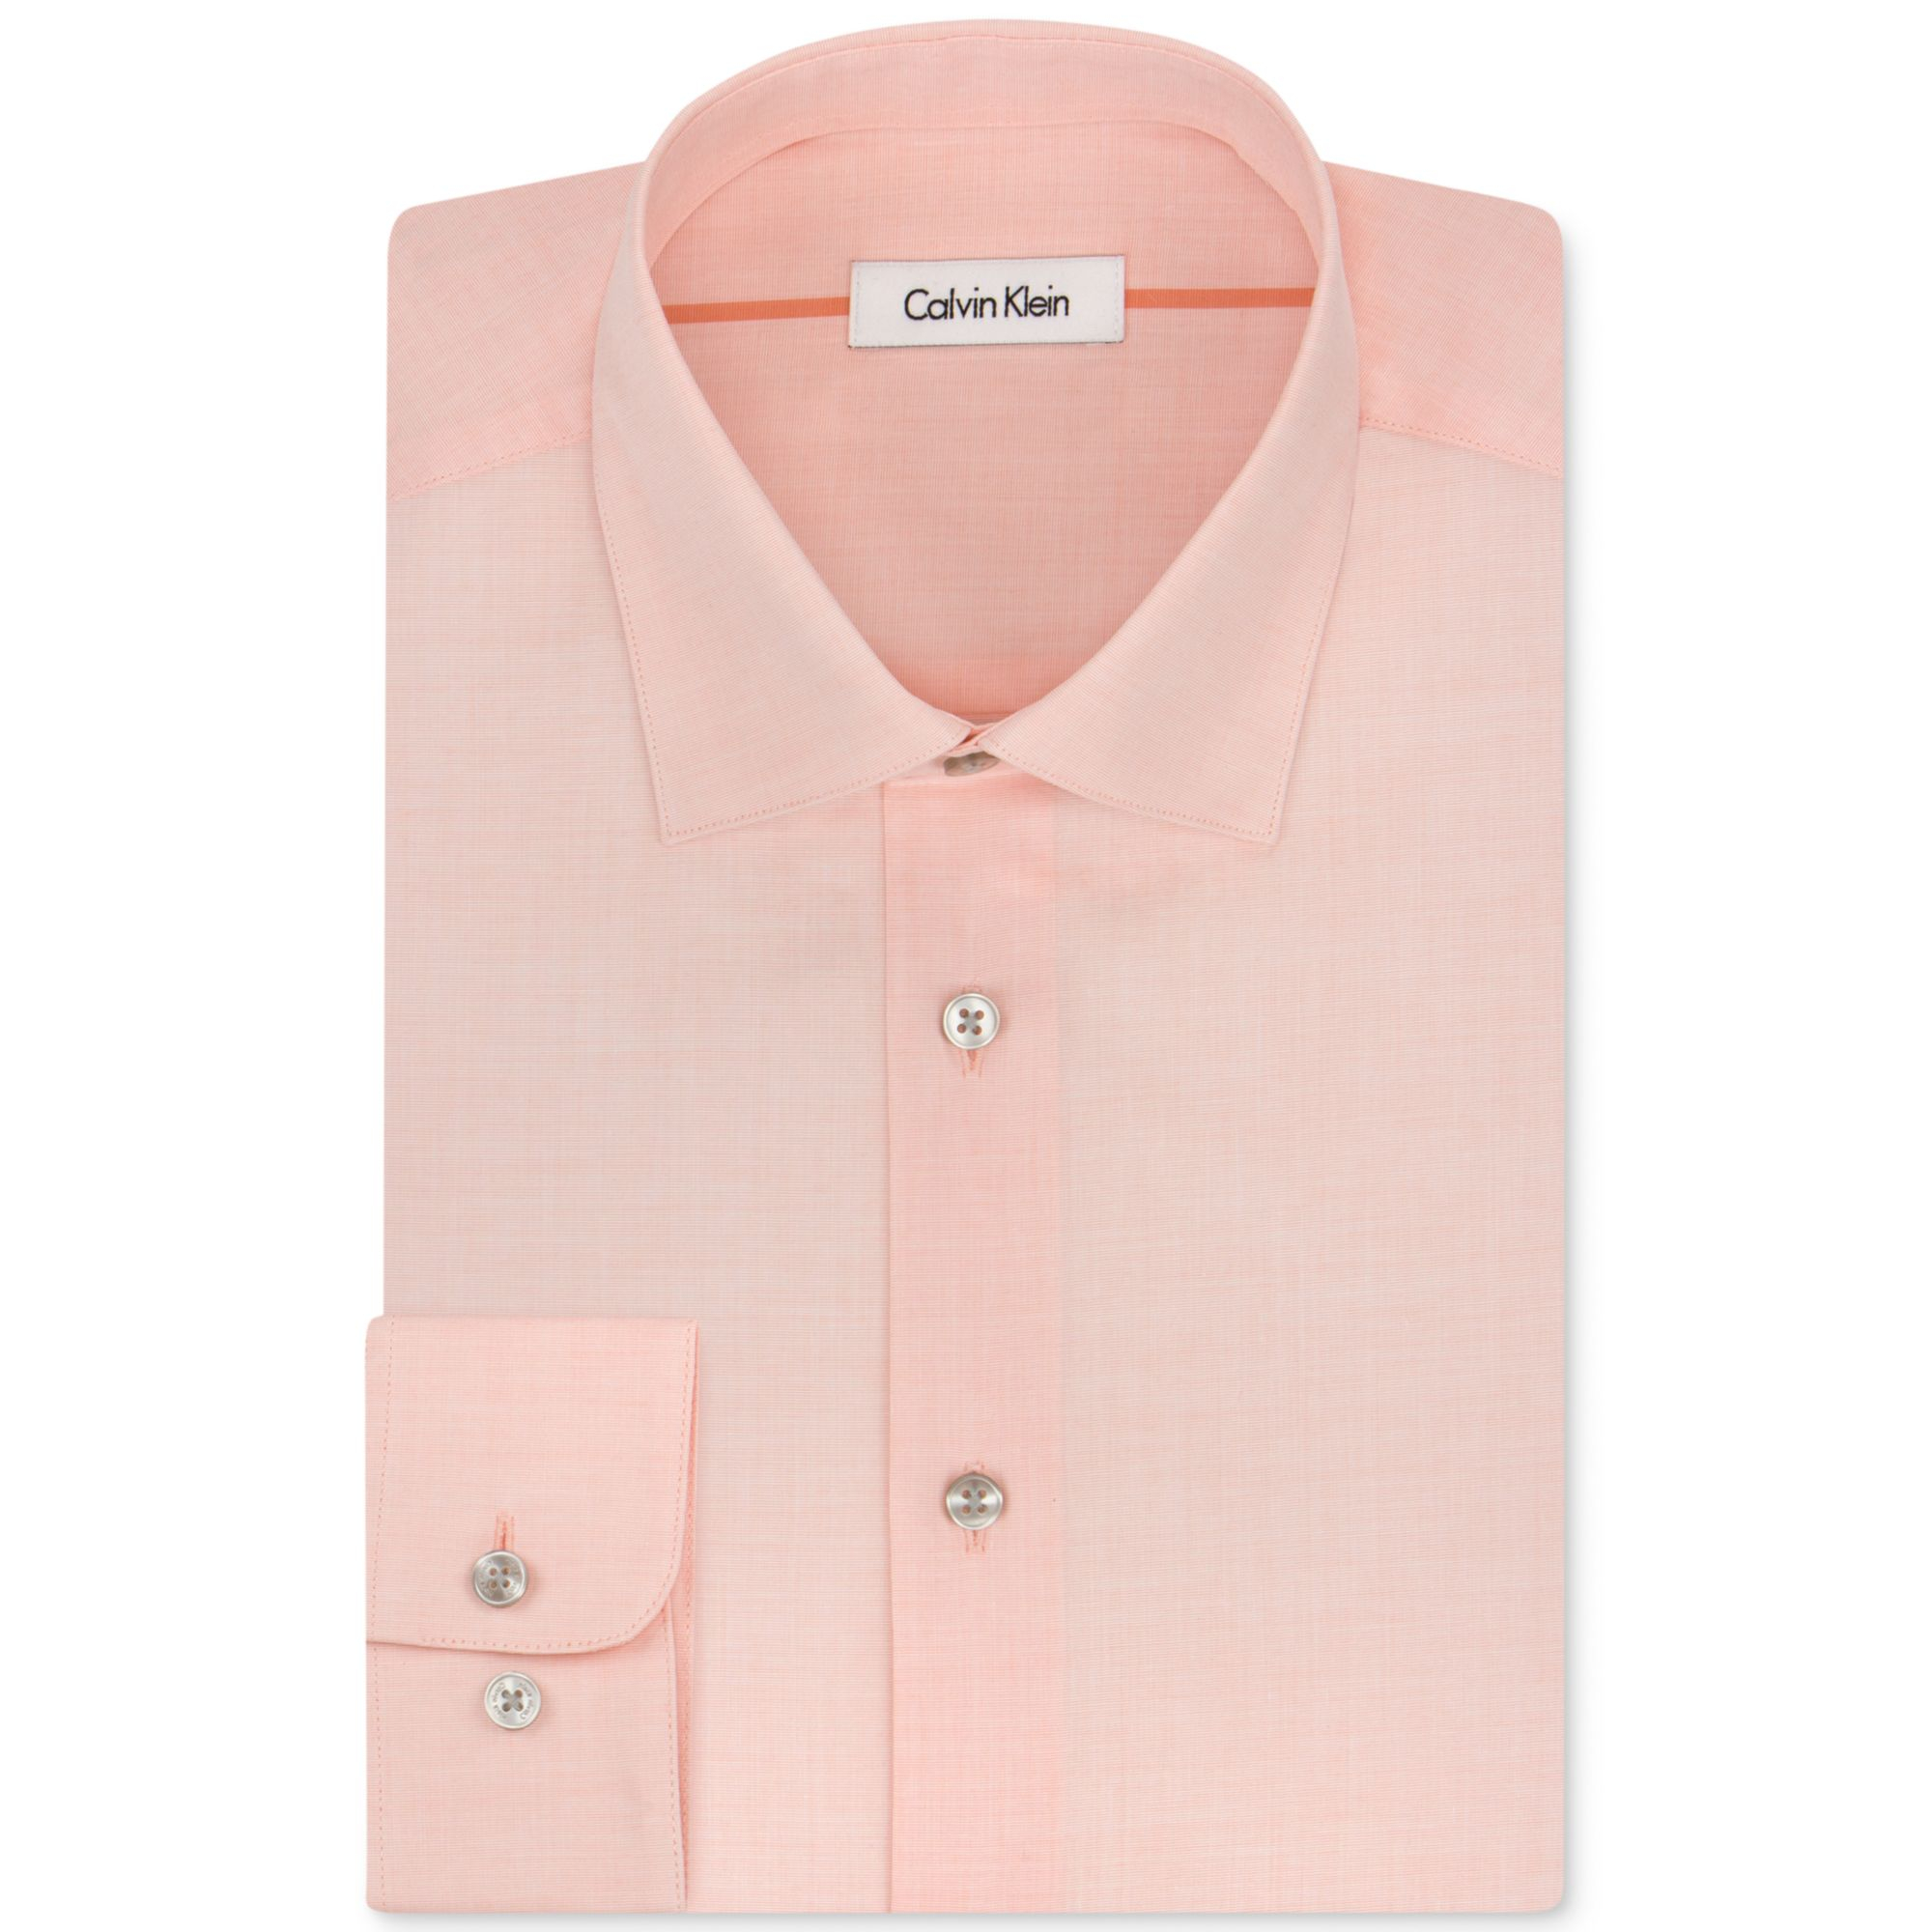 Calvin Klein Liquid Cotton Solid Light Peach Dress Shirt